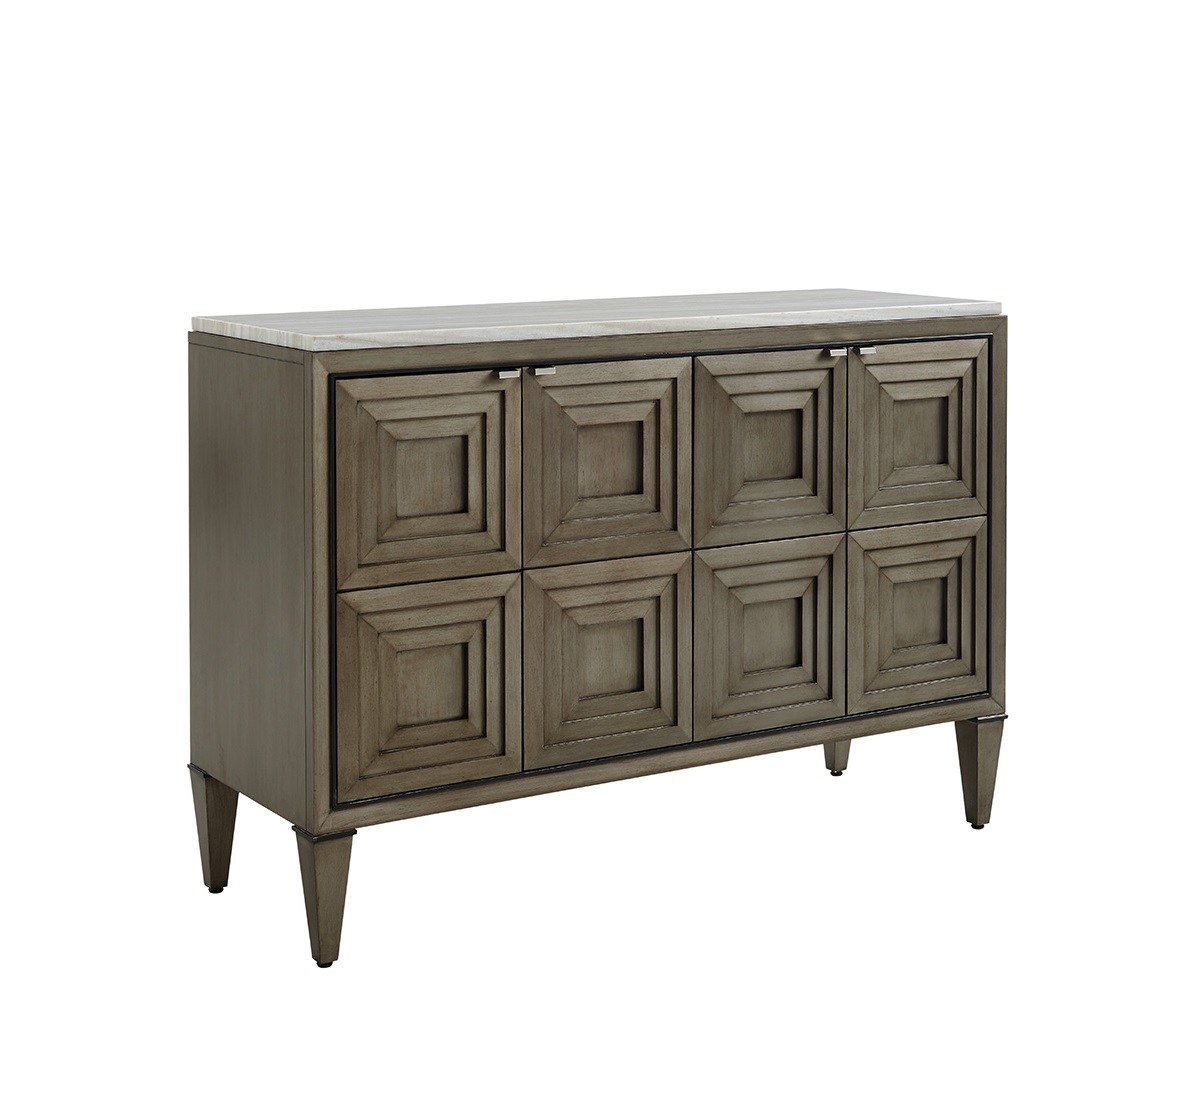 Ariana Domaine Hall Chest, Lexington Traditional Chest Of Drawers Furniture